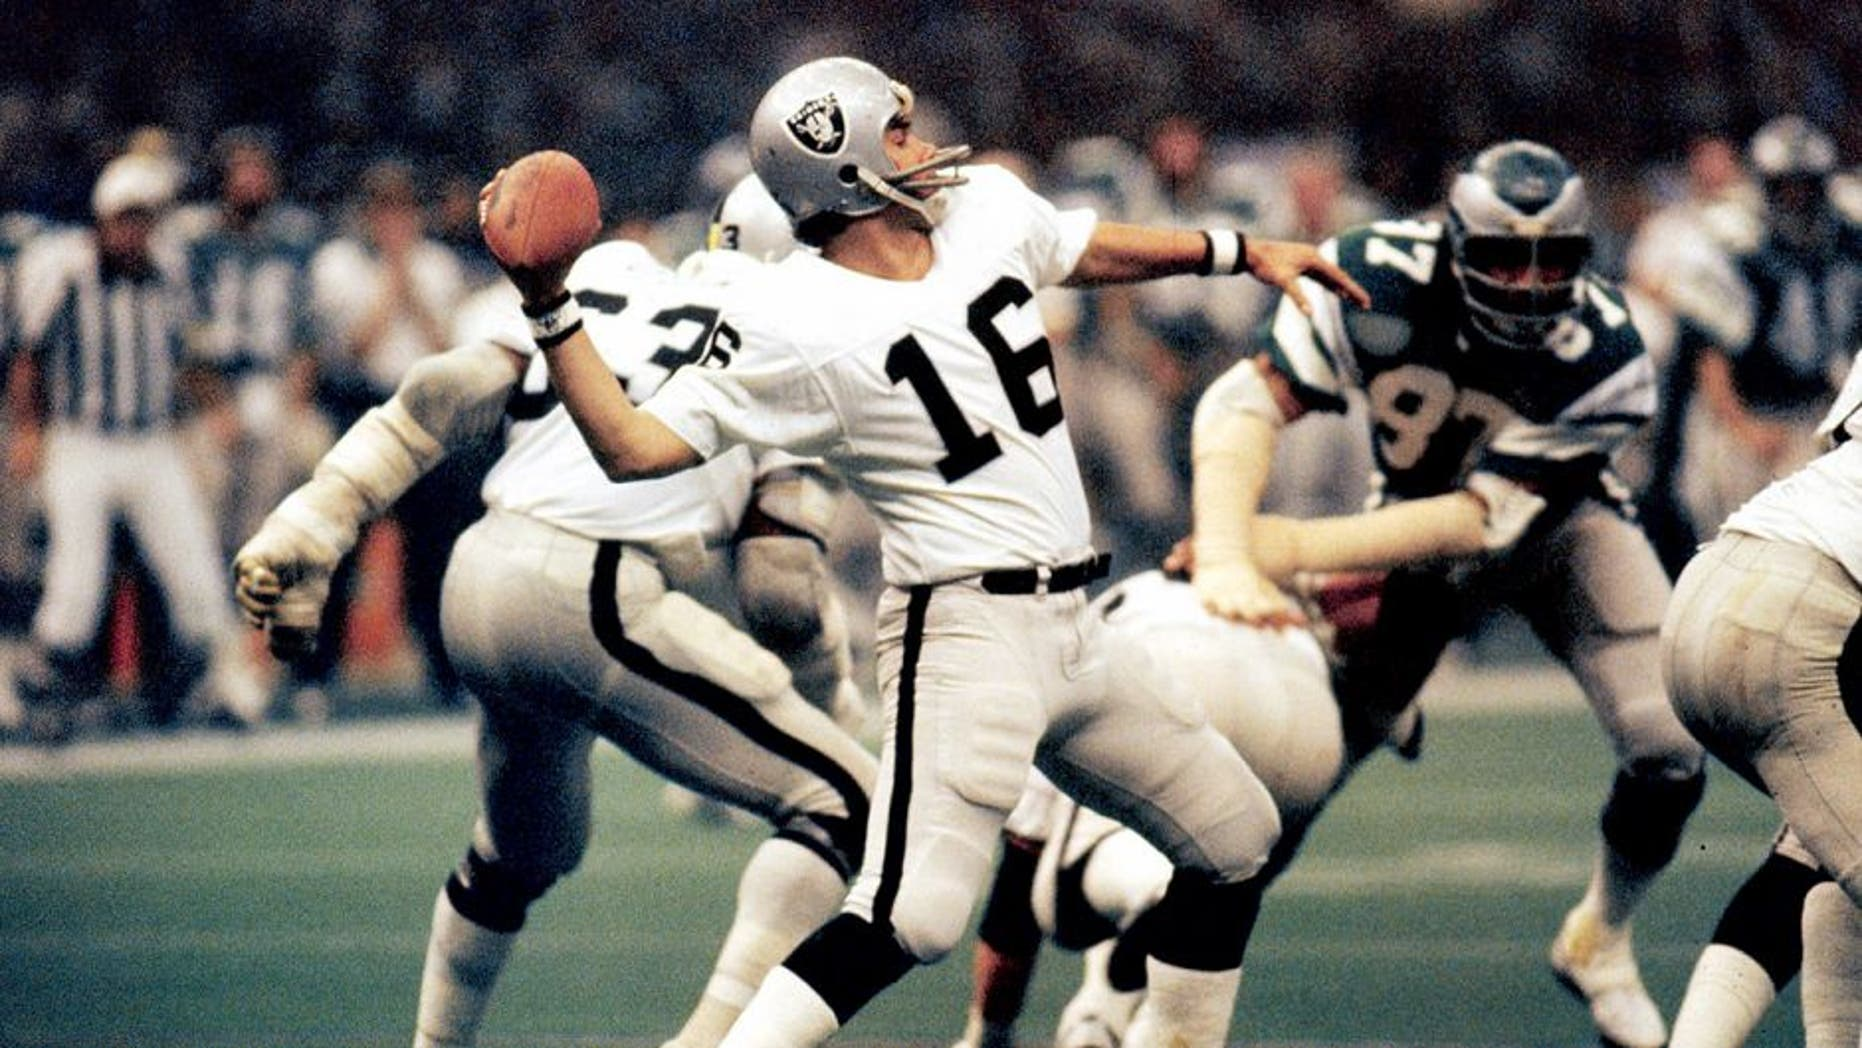 Oakland Raiders quarterback Jim Plunkett, the game's MVP, prepares to pass against the Philadelphia Eagles during the Raiders 27-10 victory in Super Bowl XV on January 25, 1981 at the Louisiana Superdome in New Orleans, Louisiana. (Photo by Sylvia Allen/Getty Images)